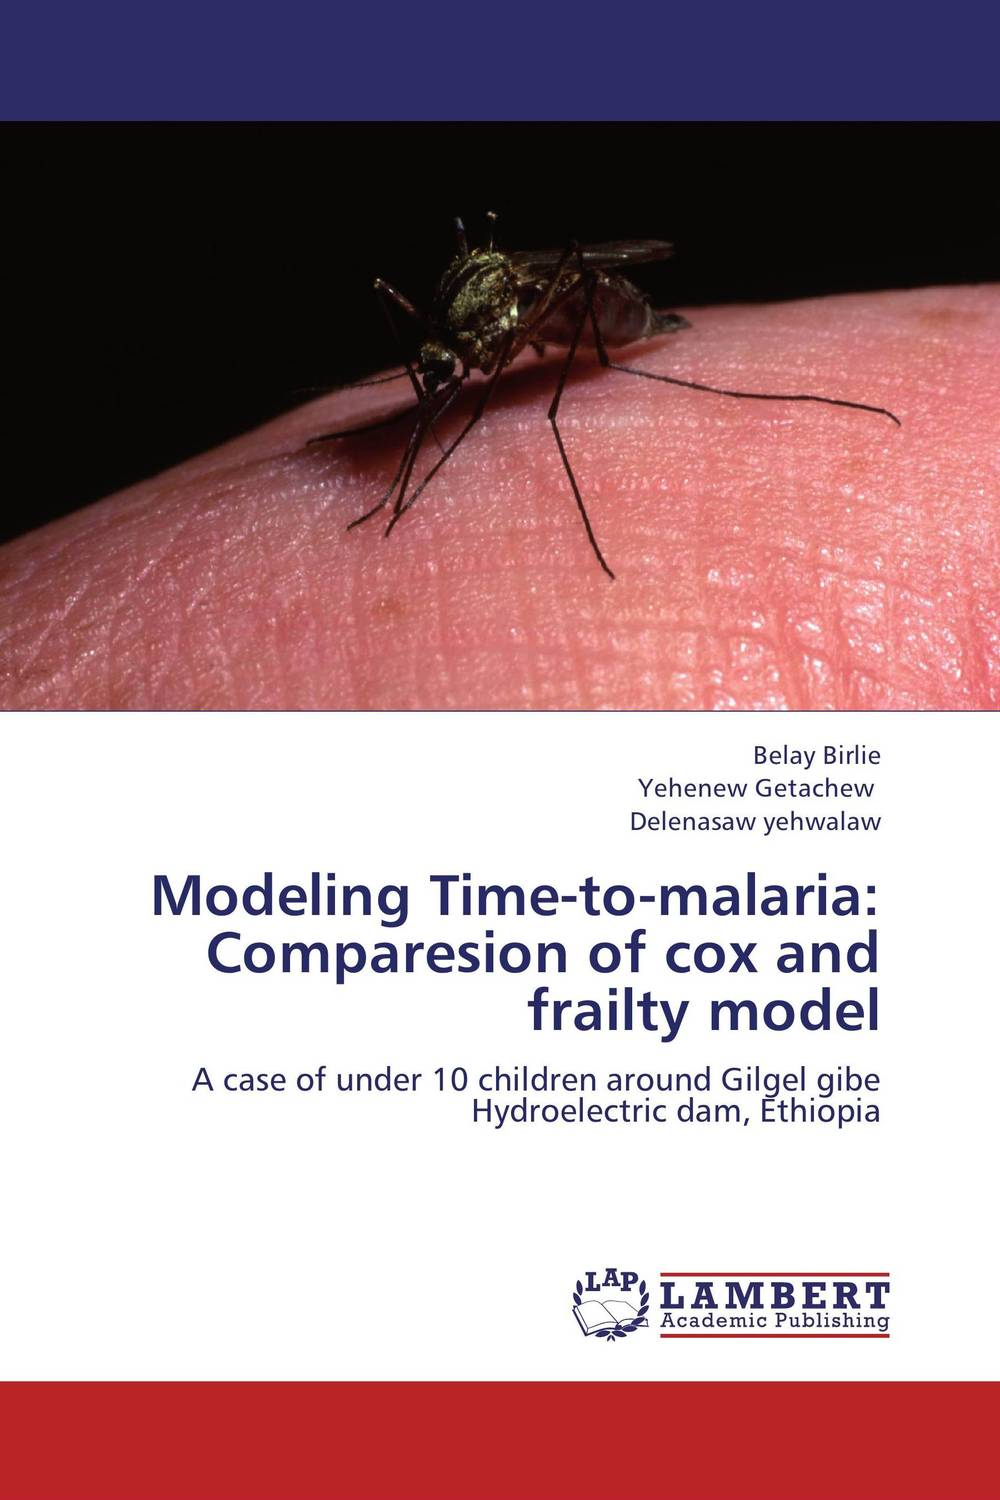 Modeling Time-to-malaria: Comparesion of cox and frailty model маршрутизатор роутер tenda n300 white